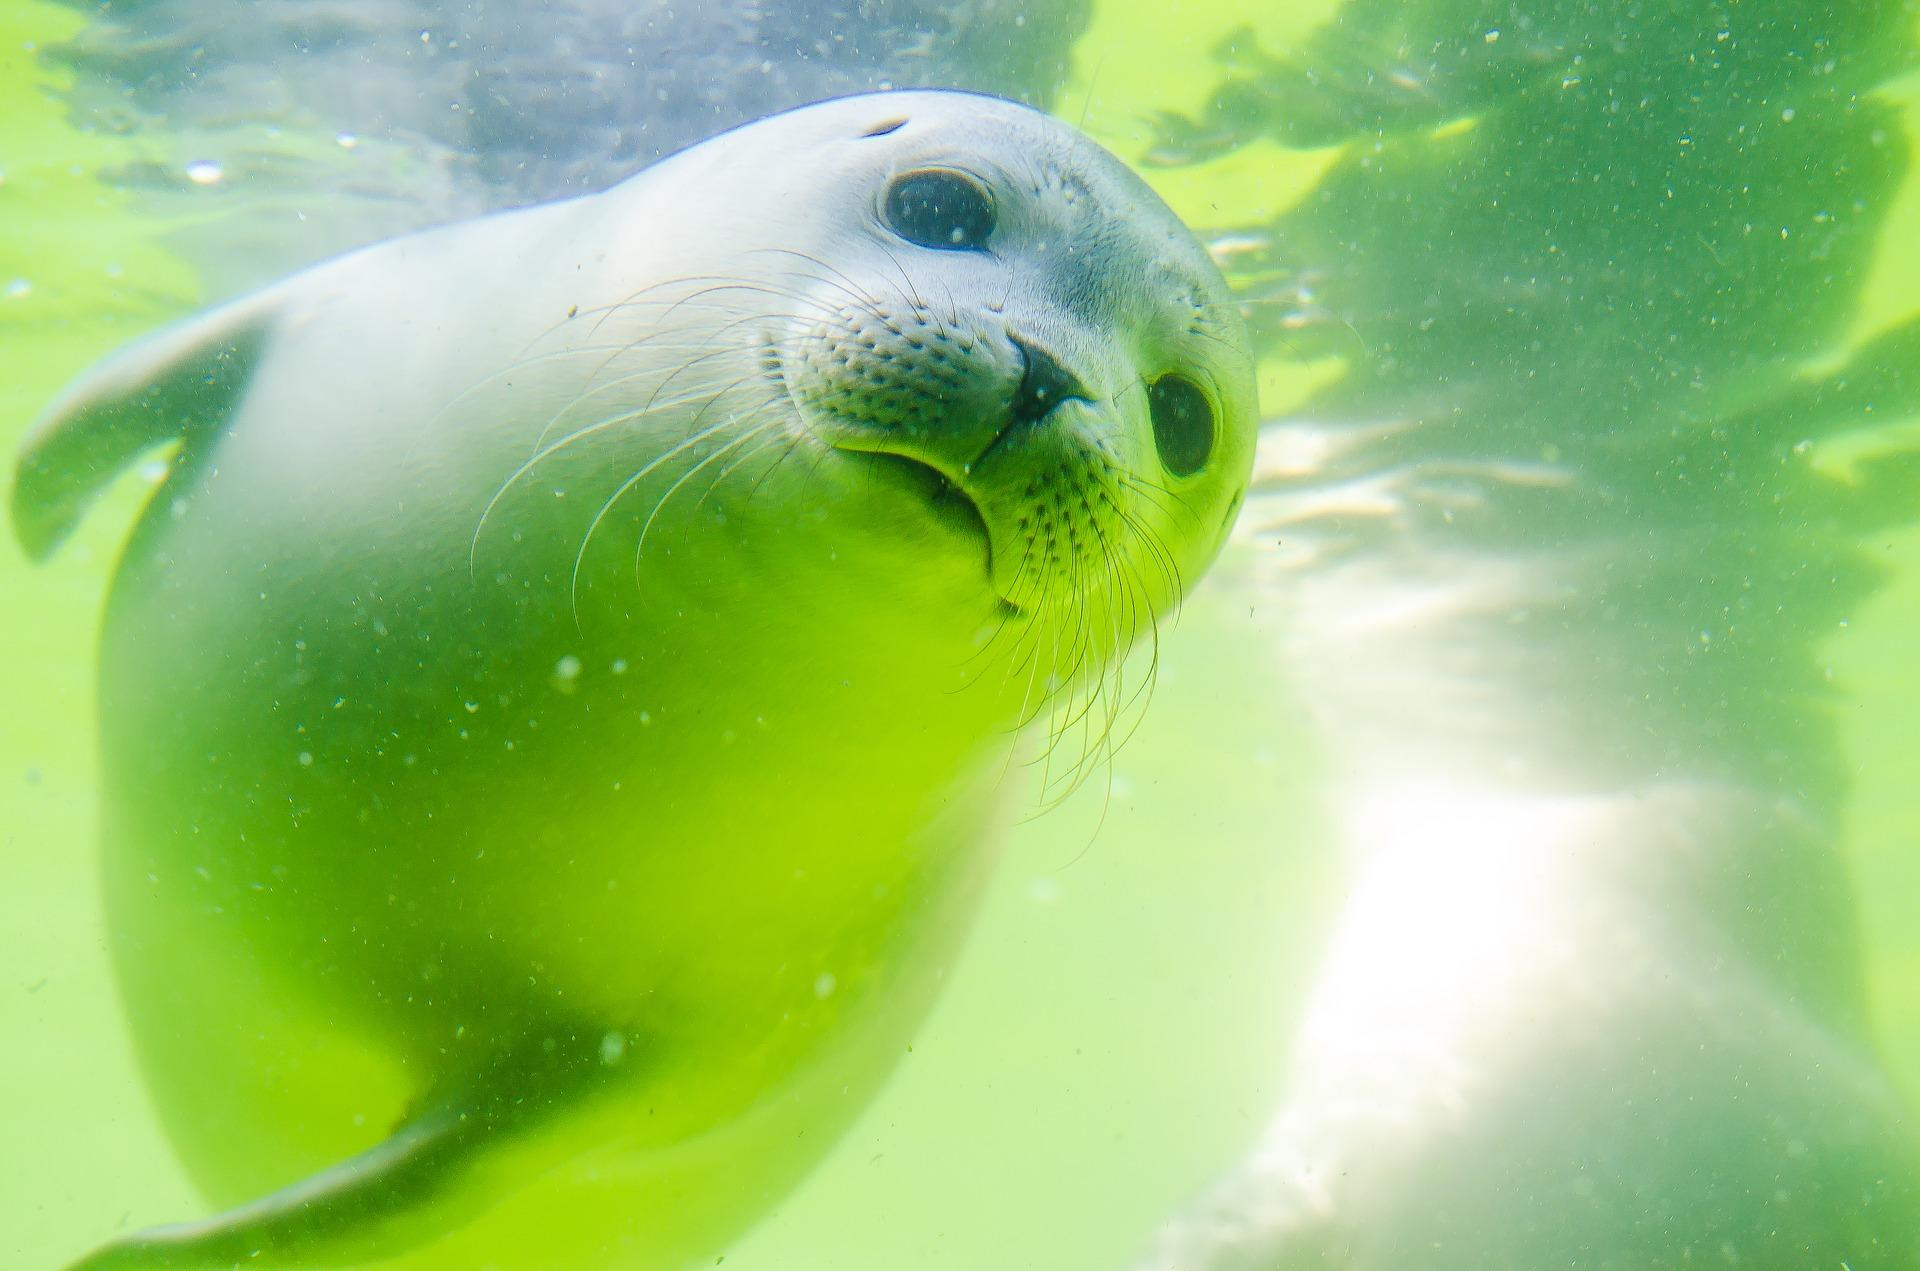 neglected seal covered in seaweed sparked outrage